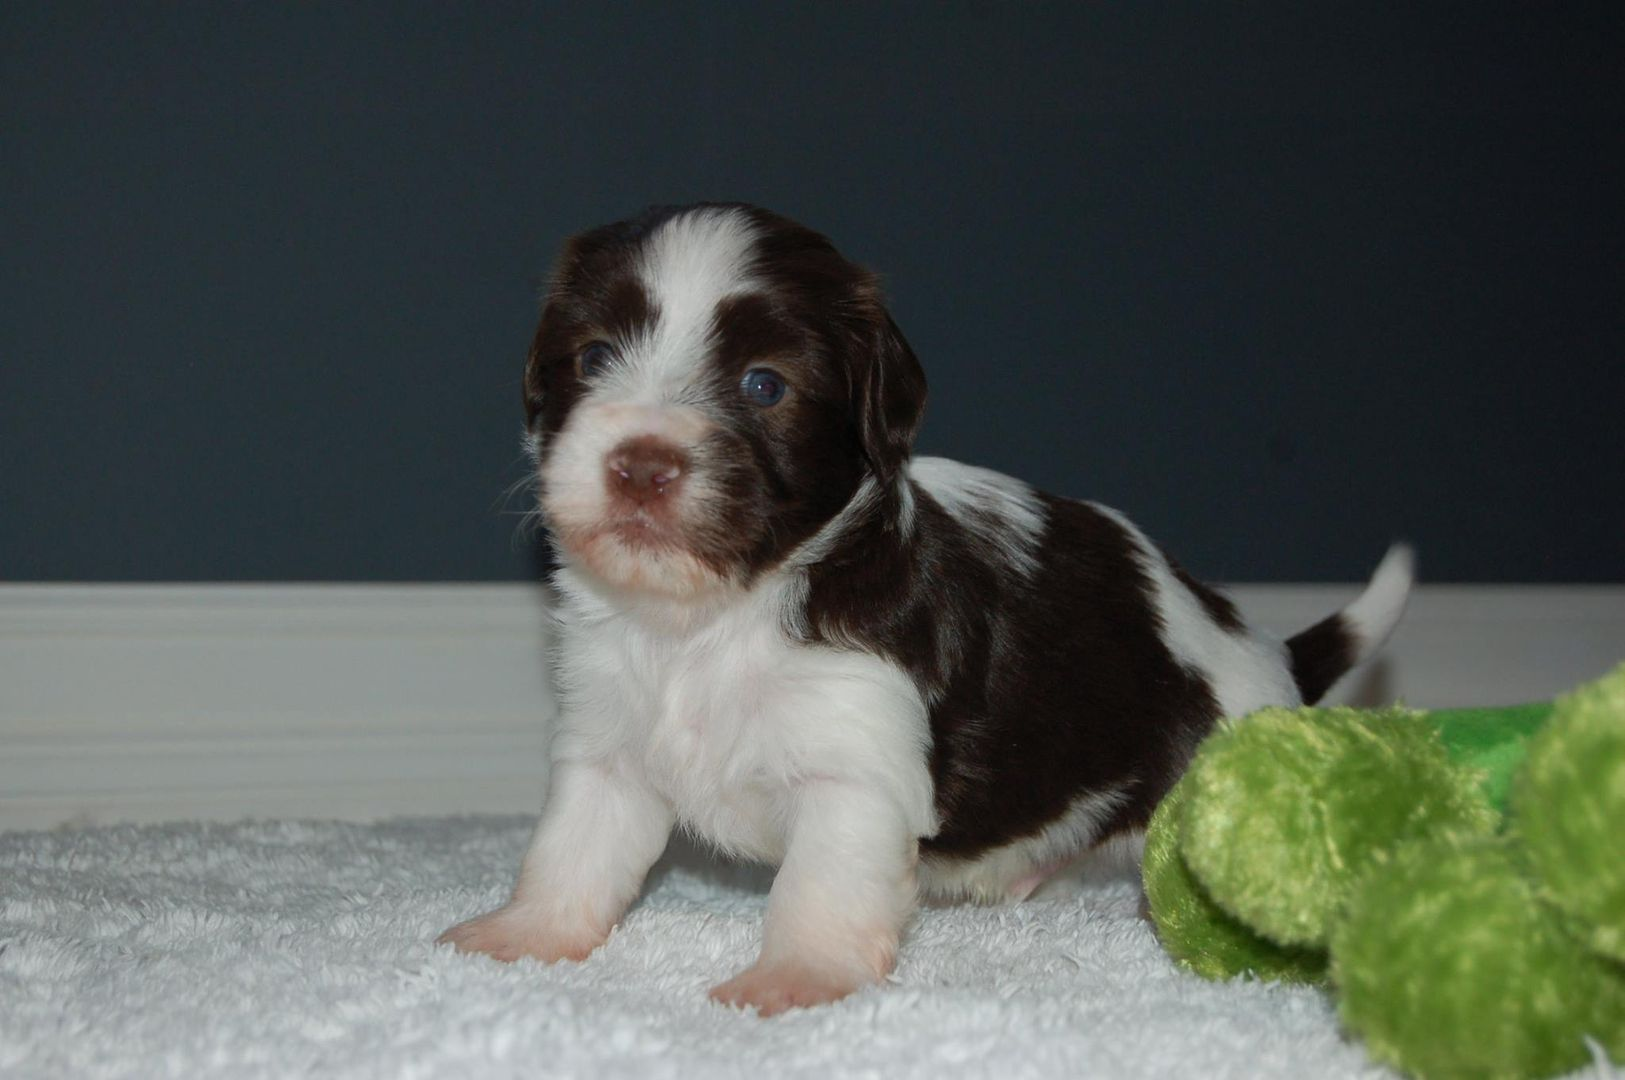 Akc Chocolate Puppies For Sale In Maine Toy Dog Maine Havanese Gray Me With Images Puppies For Sale Dog Toys Puppies